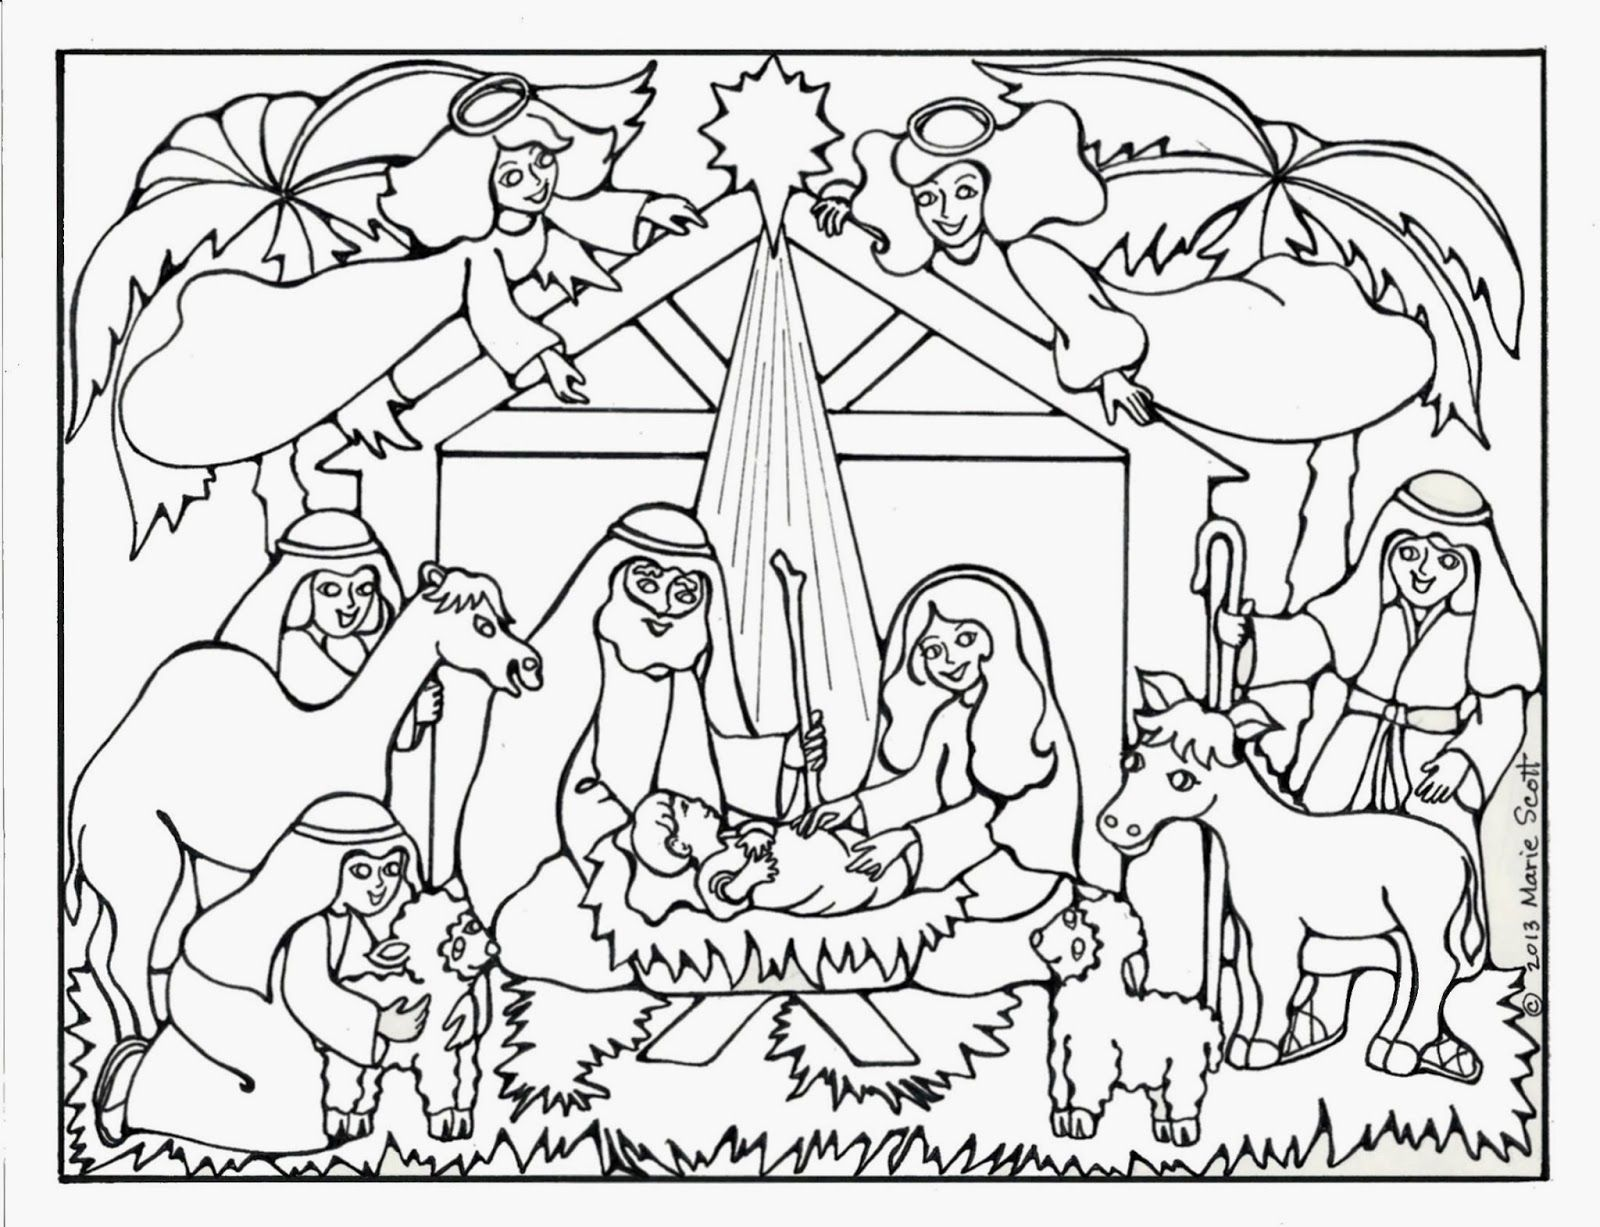 Coloring Pages Sub Printable Nativity 312179 Jpg 1600 1227 Nativity Coloring Nativity Coloring Pages Christmas Coloring Books